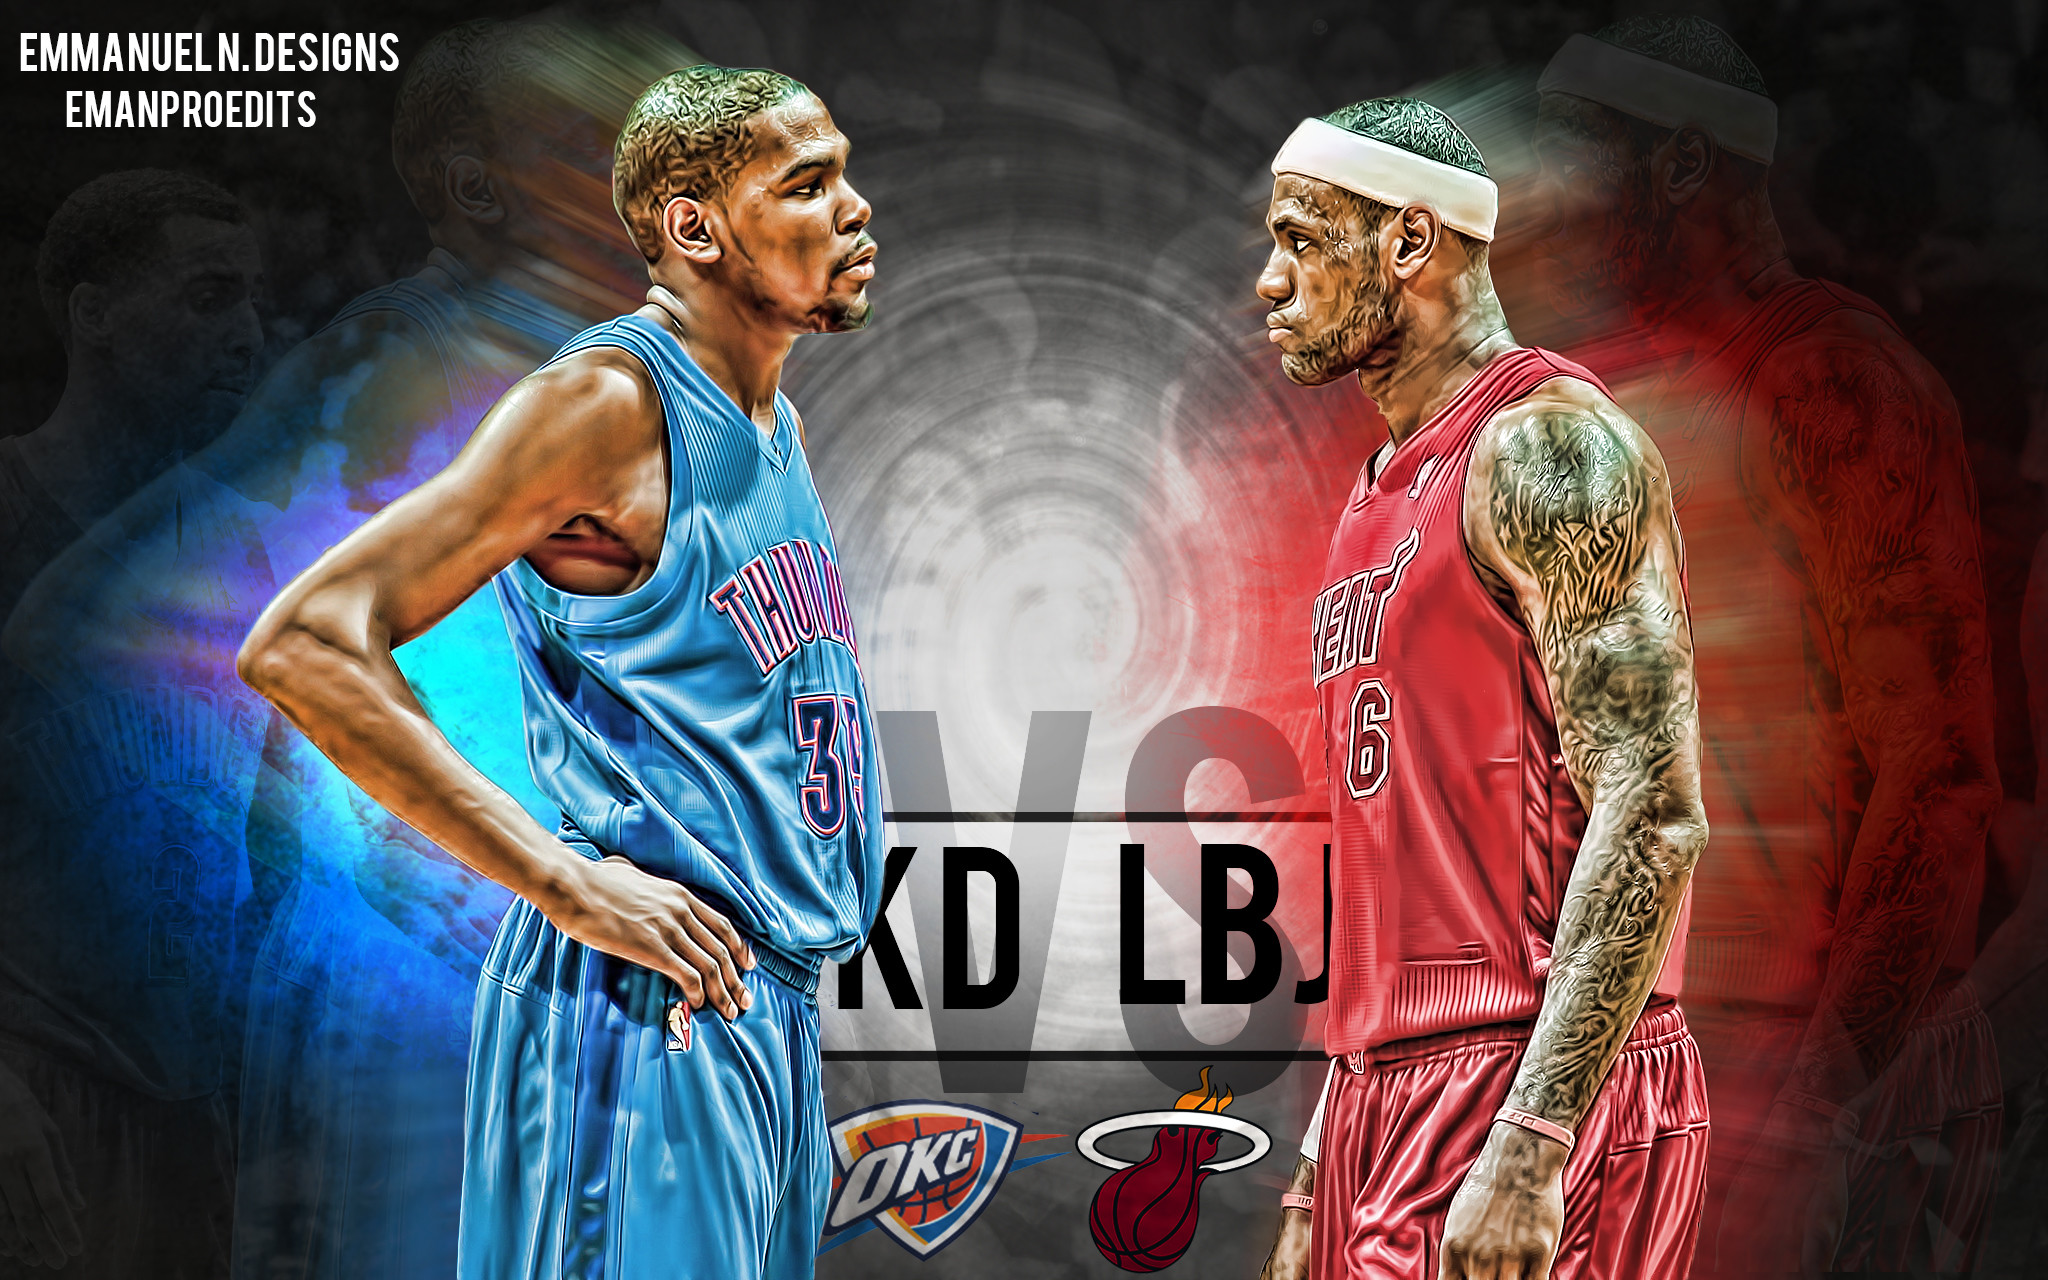 Res: 2048x1280, ... Kevin Durant vs Lebron James Wallpaper by emanproedits